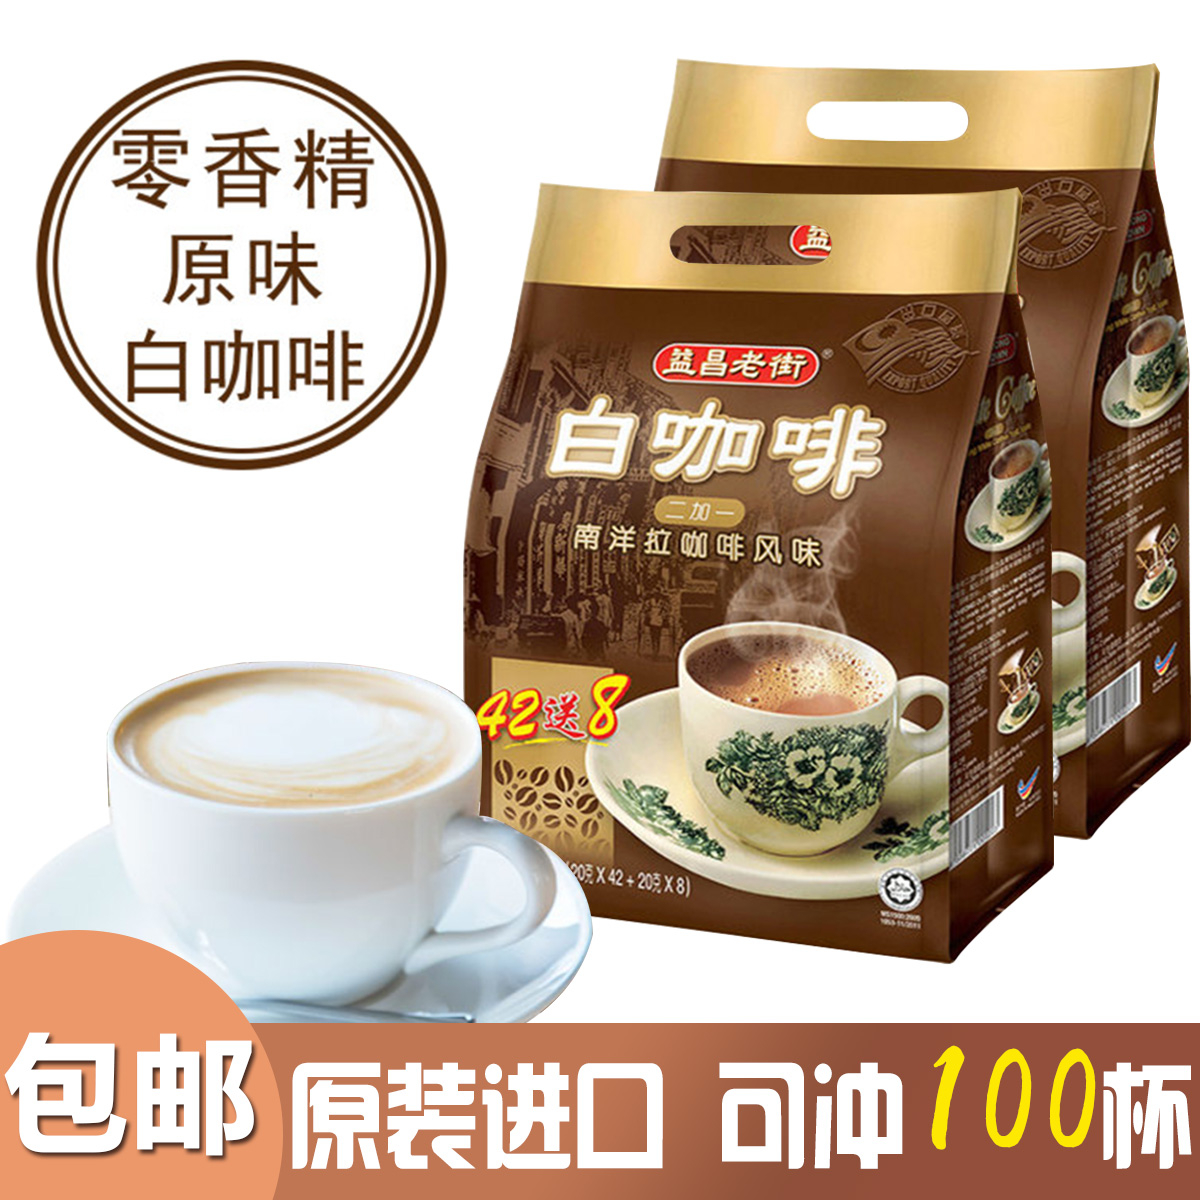 2 bags of original instant coffee powder from Yichang old street imported from Malaysia